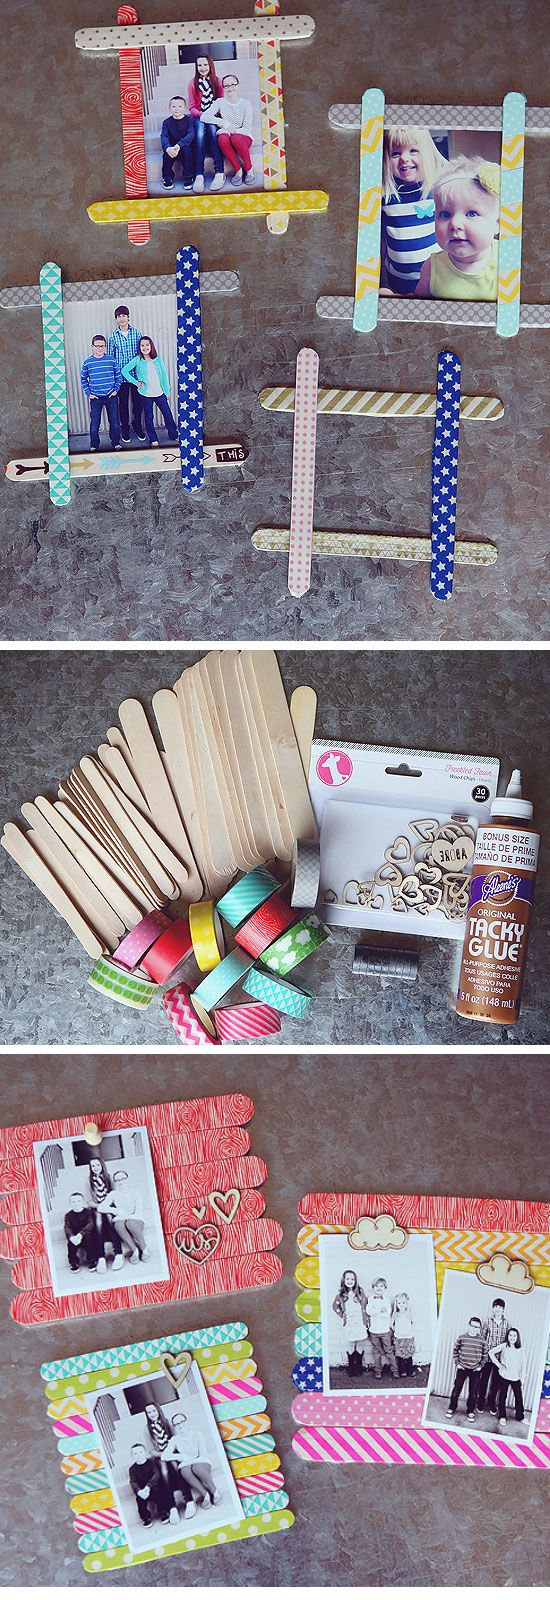 Popsicle Stick Photo Frames | 18 DIY Fathers Day Gifts from Kids for Grandpa | Easy Birthday Gifts for Dad from Kids http://ito.mx/fathersday2016